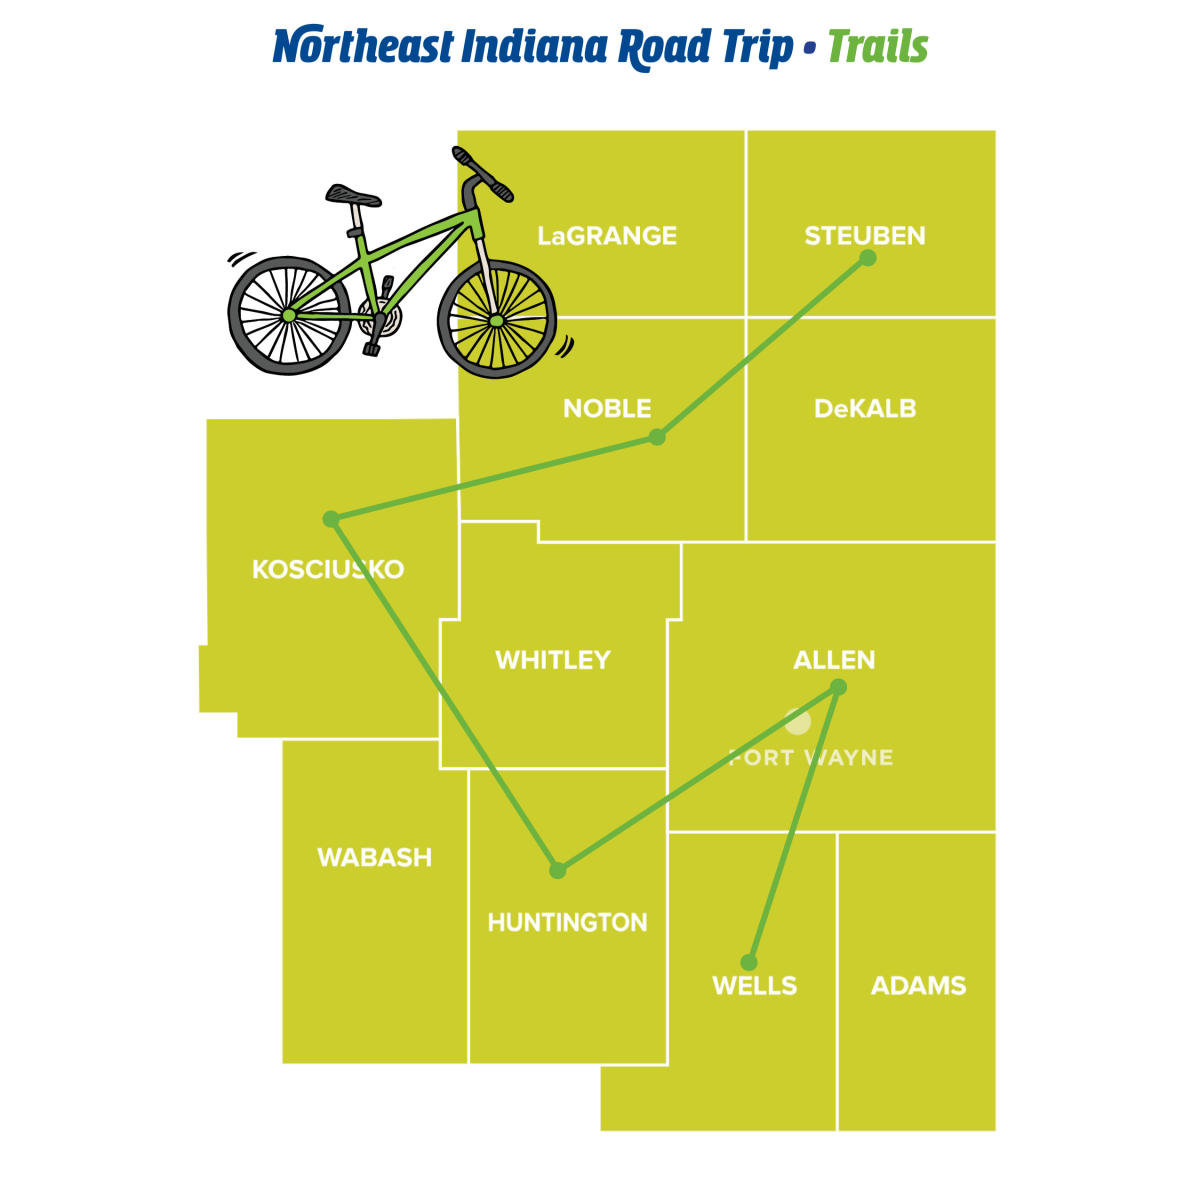 Trails - Northeast Indiana Road Trips